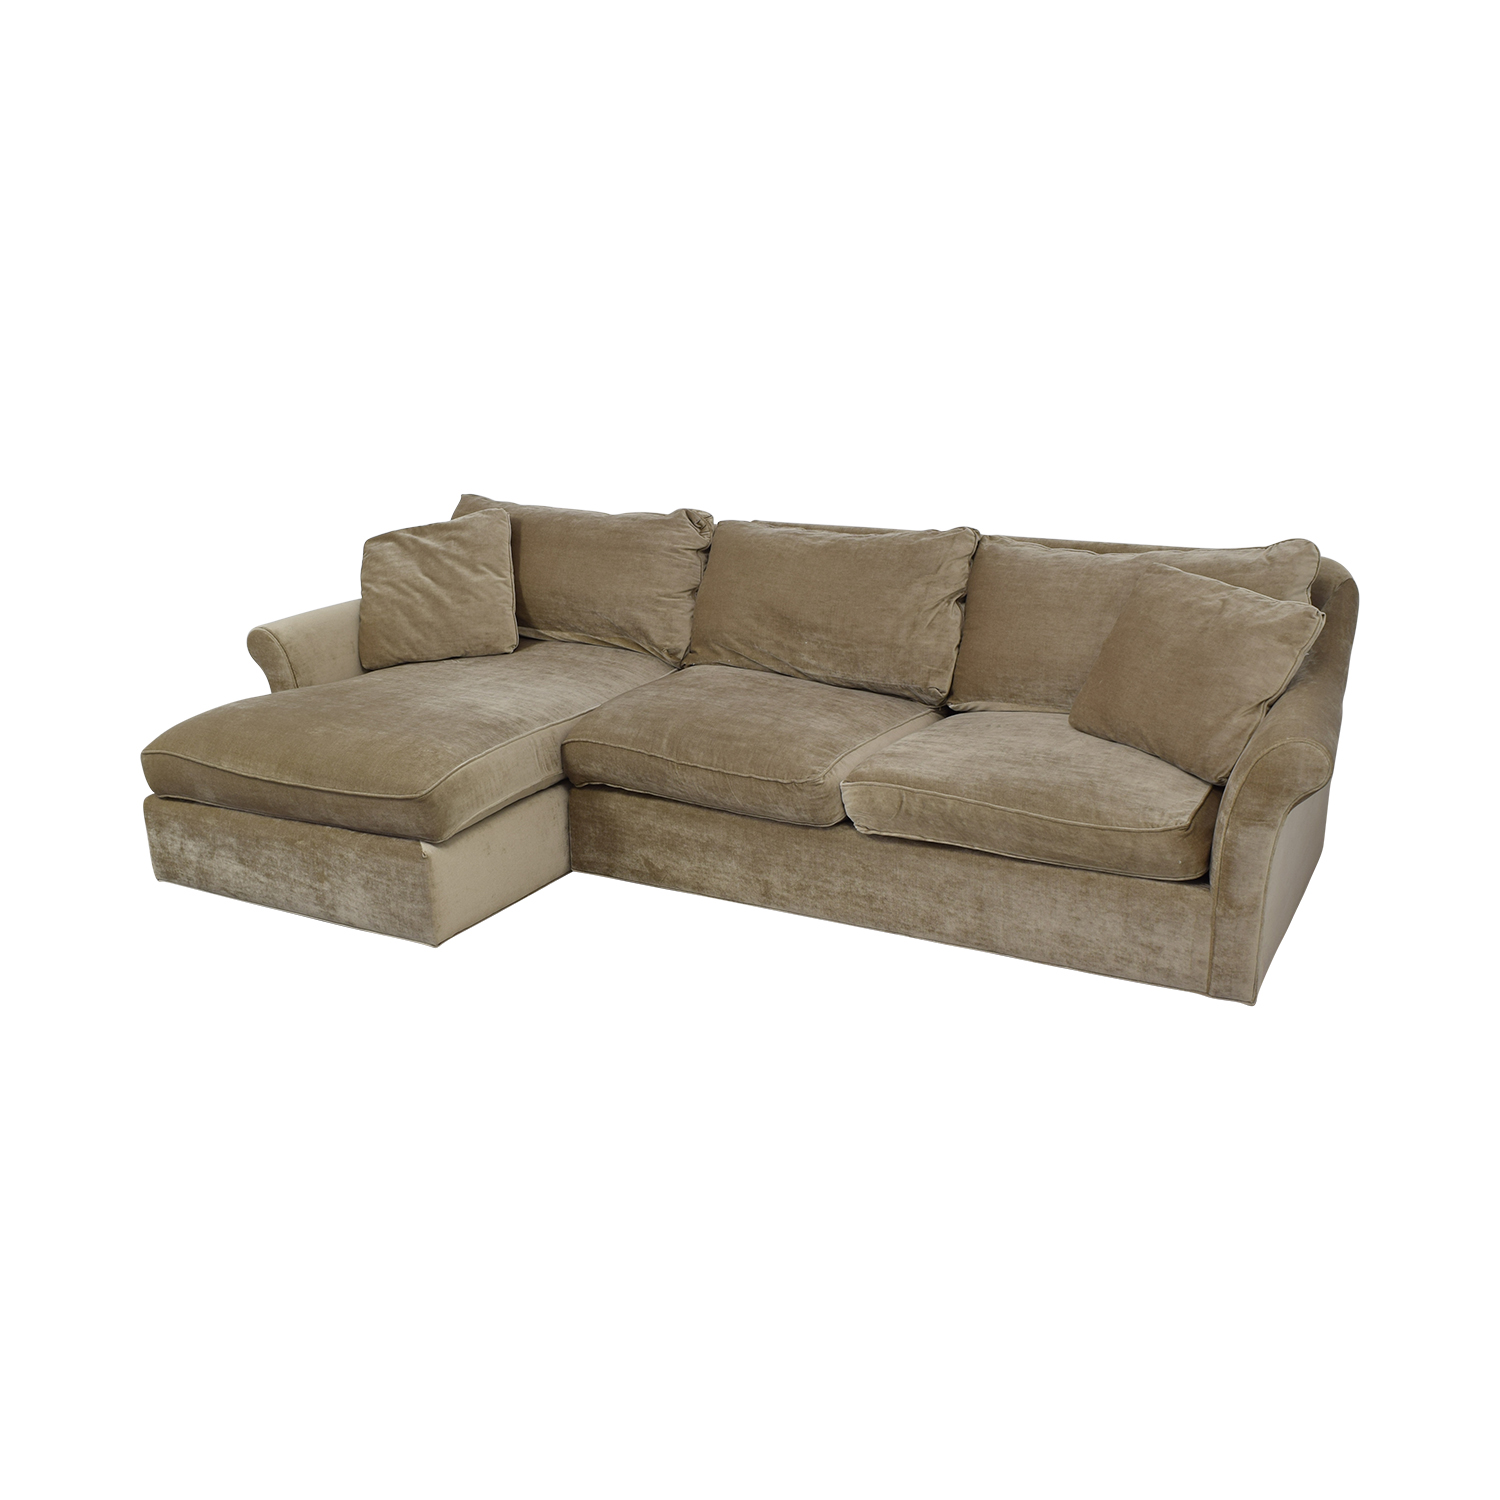 ABC Carpet & Home ABC Carpet & Home Winged Arm Sectional Sofa Sofas